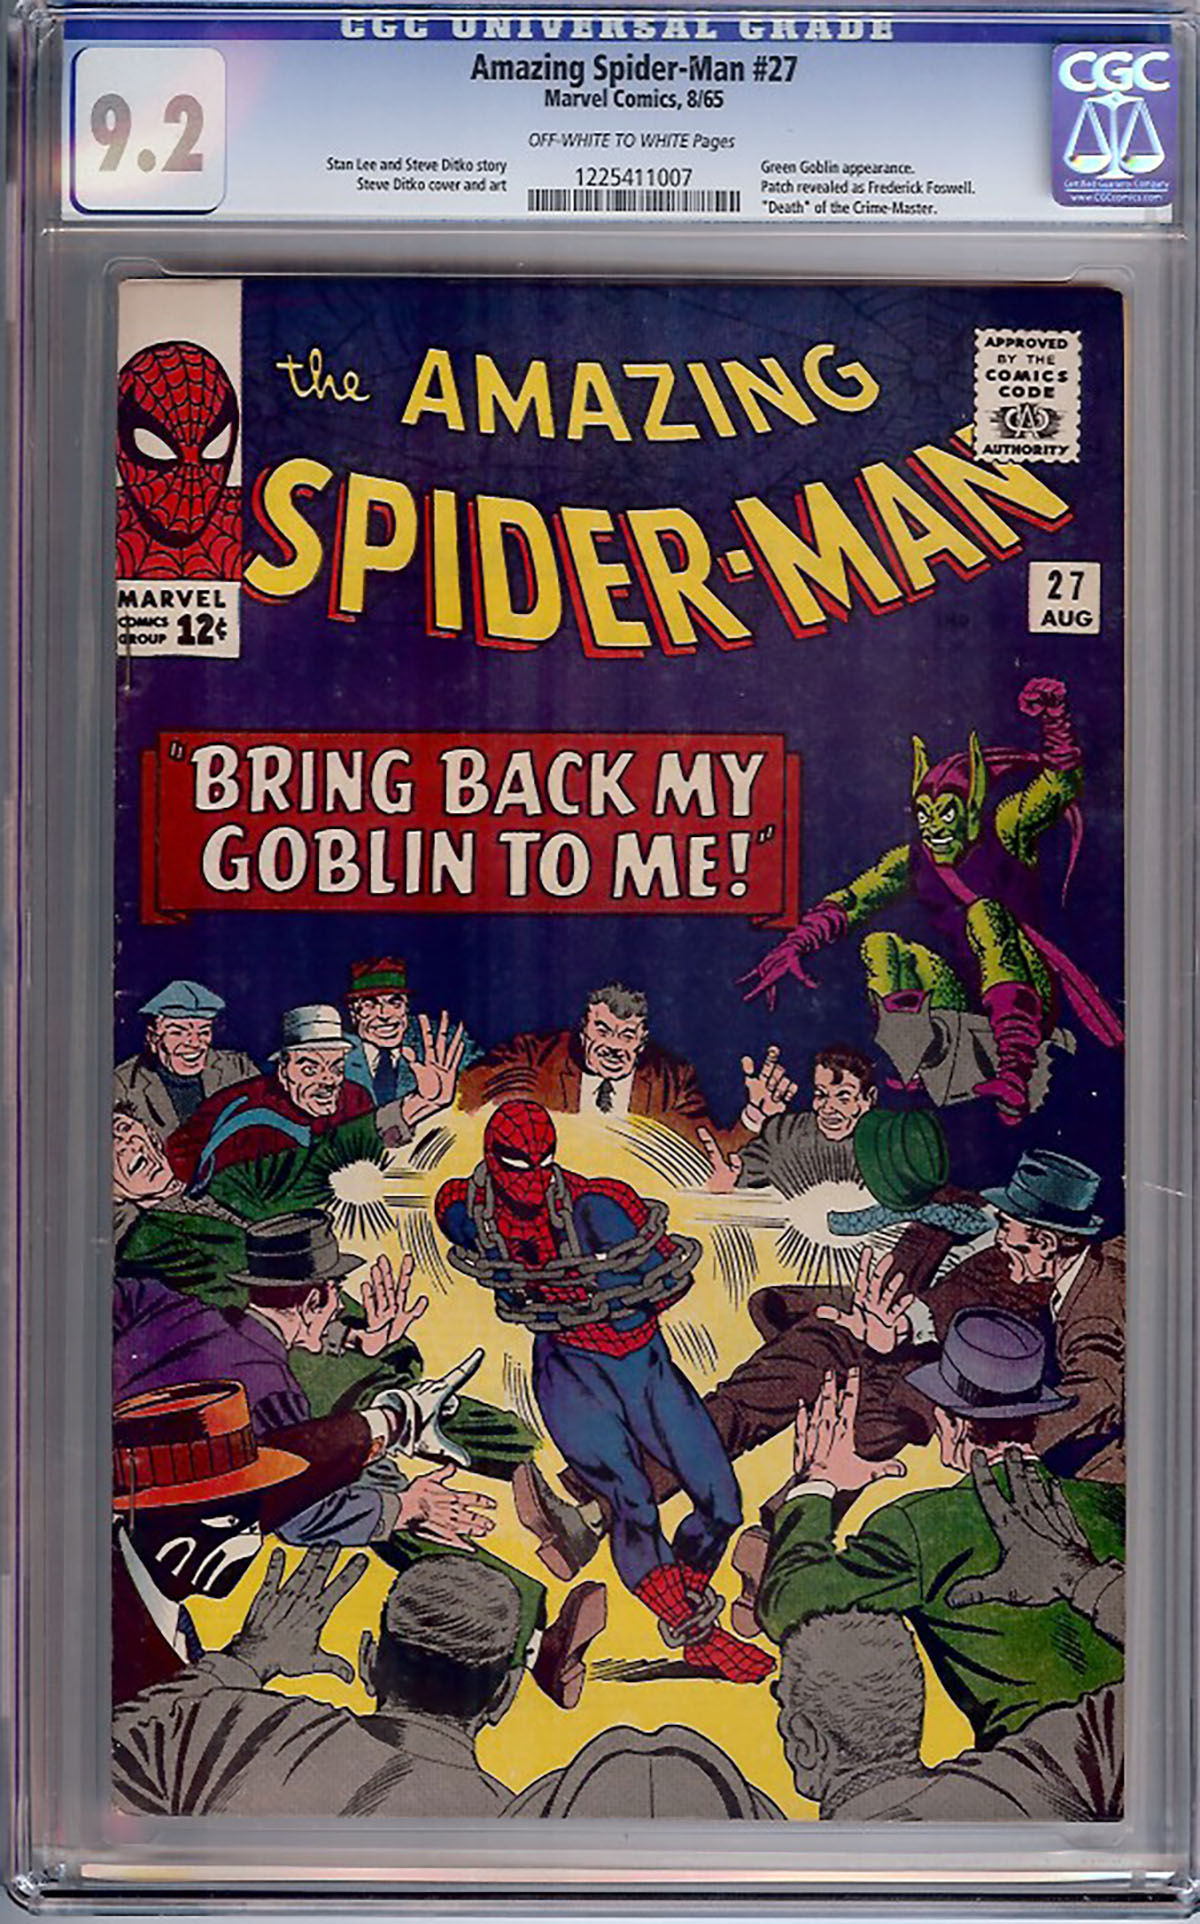 Amazing Spider-Man #27 CGC 9.2 ow/w